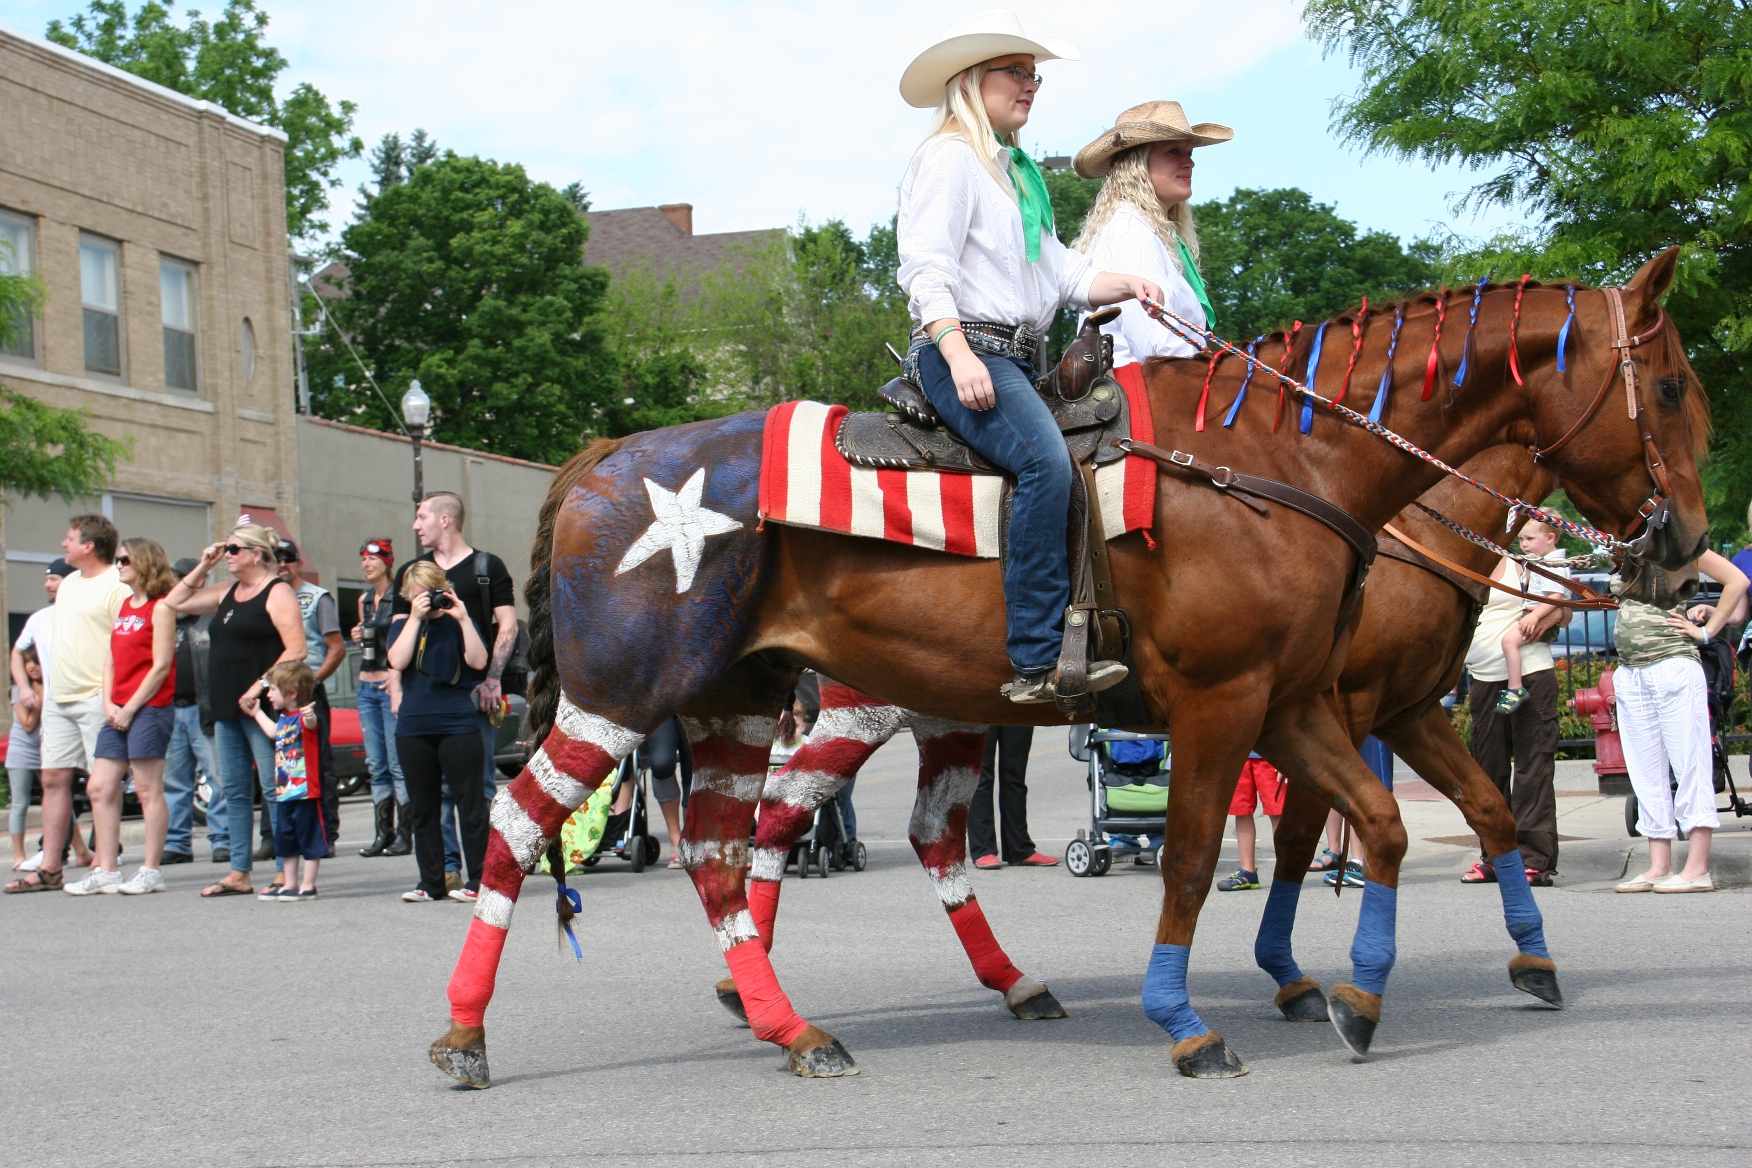 parade patriotic horses minnesota prairie roots faribault s memorial day parade a photo essay parade 56 patriotic horses